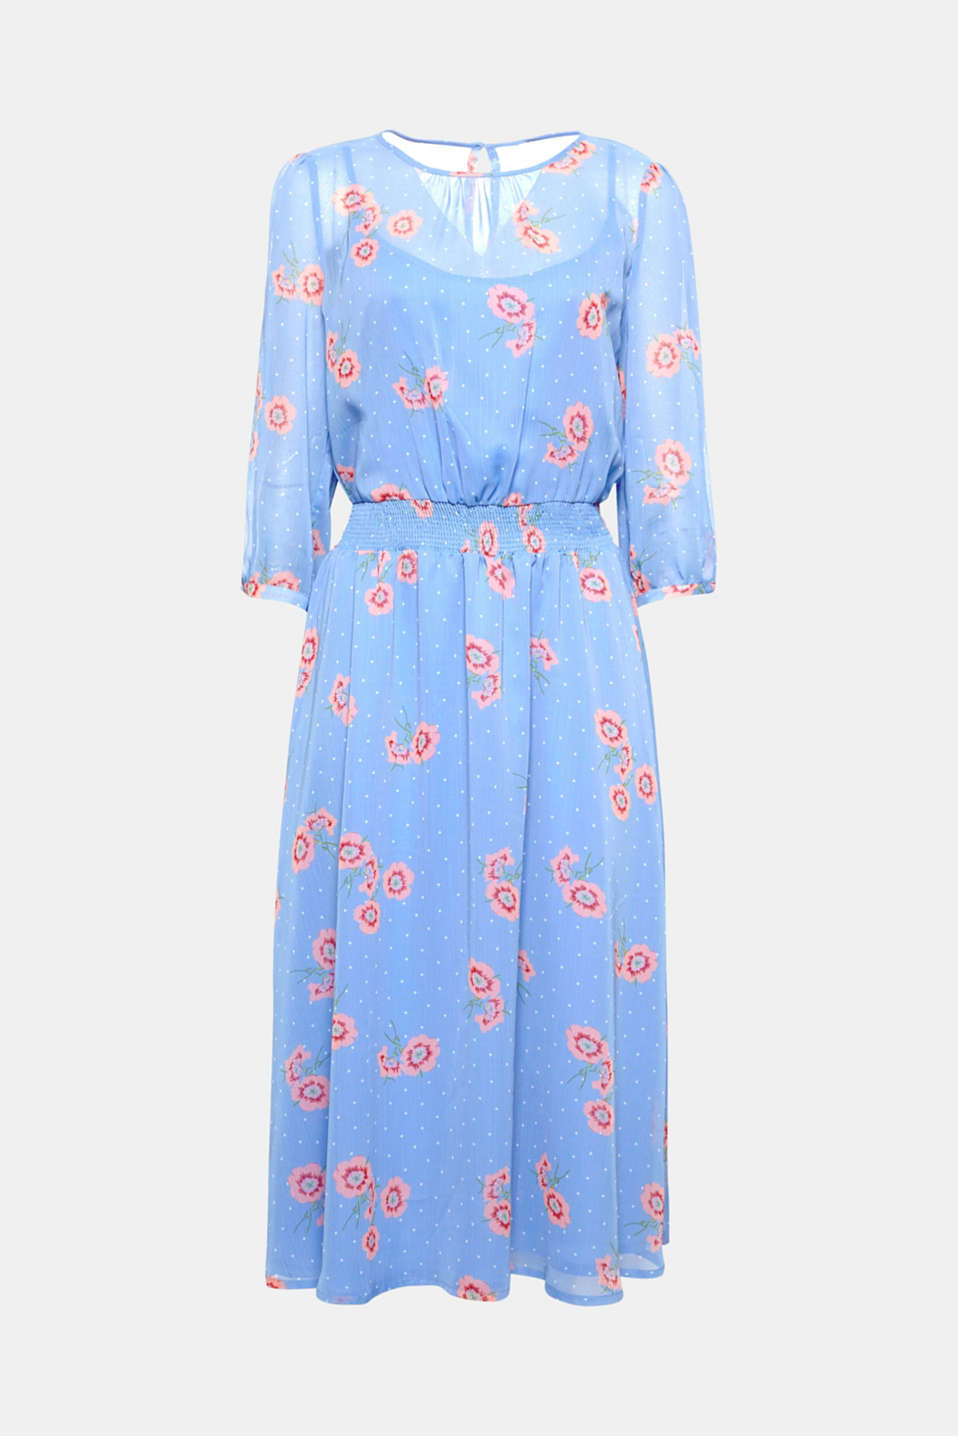 For your ultimate feminine look – or simply a great summer day: Chiffon dress in trendy midi length with a decorative all-over print and slit sleeves!